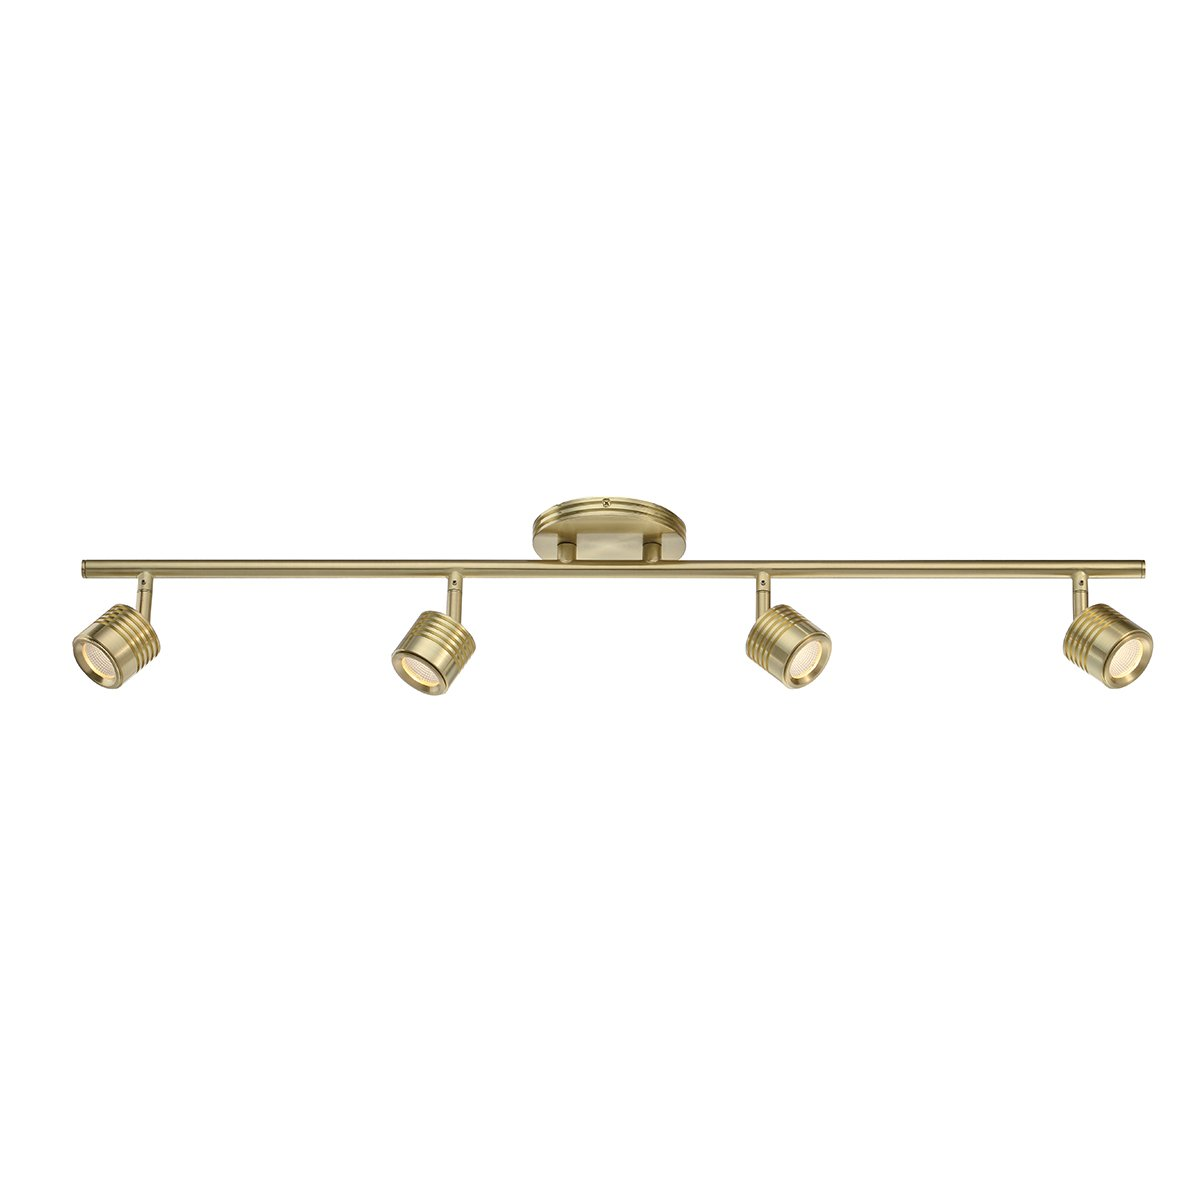 WAC Lighting TK-49534-BR Vector LED 4 Light Fixture Fixed Rail, One Size, Brushed Brass